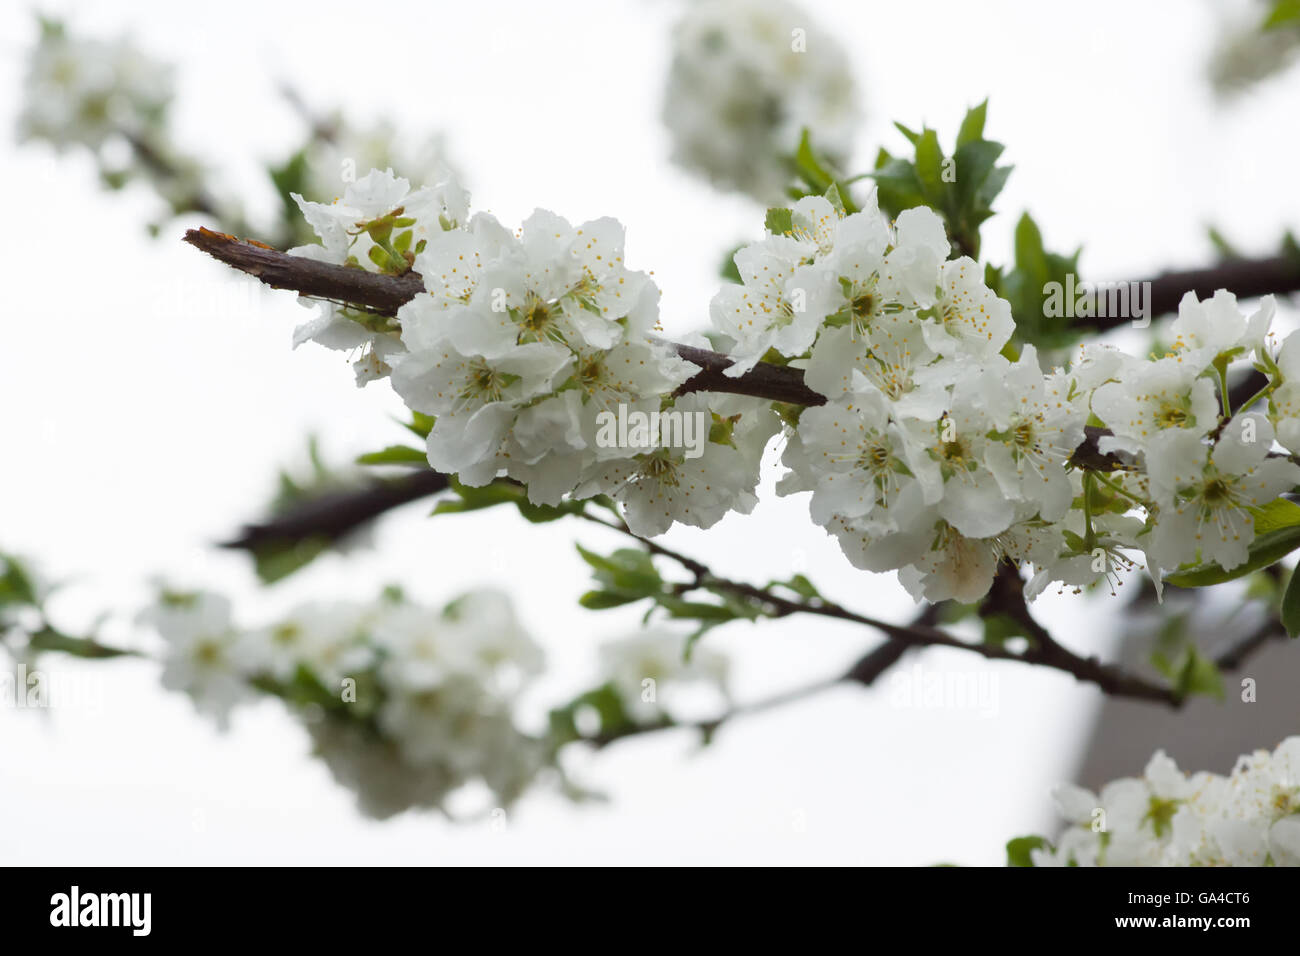 They bloom white flowers on the branches of a pear tree stock photo they bloom white flowers on the branches of a pear tree mightylinksfo